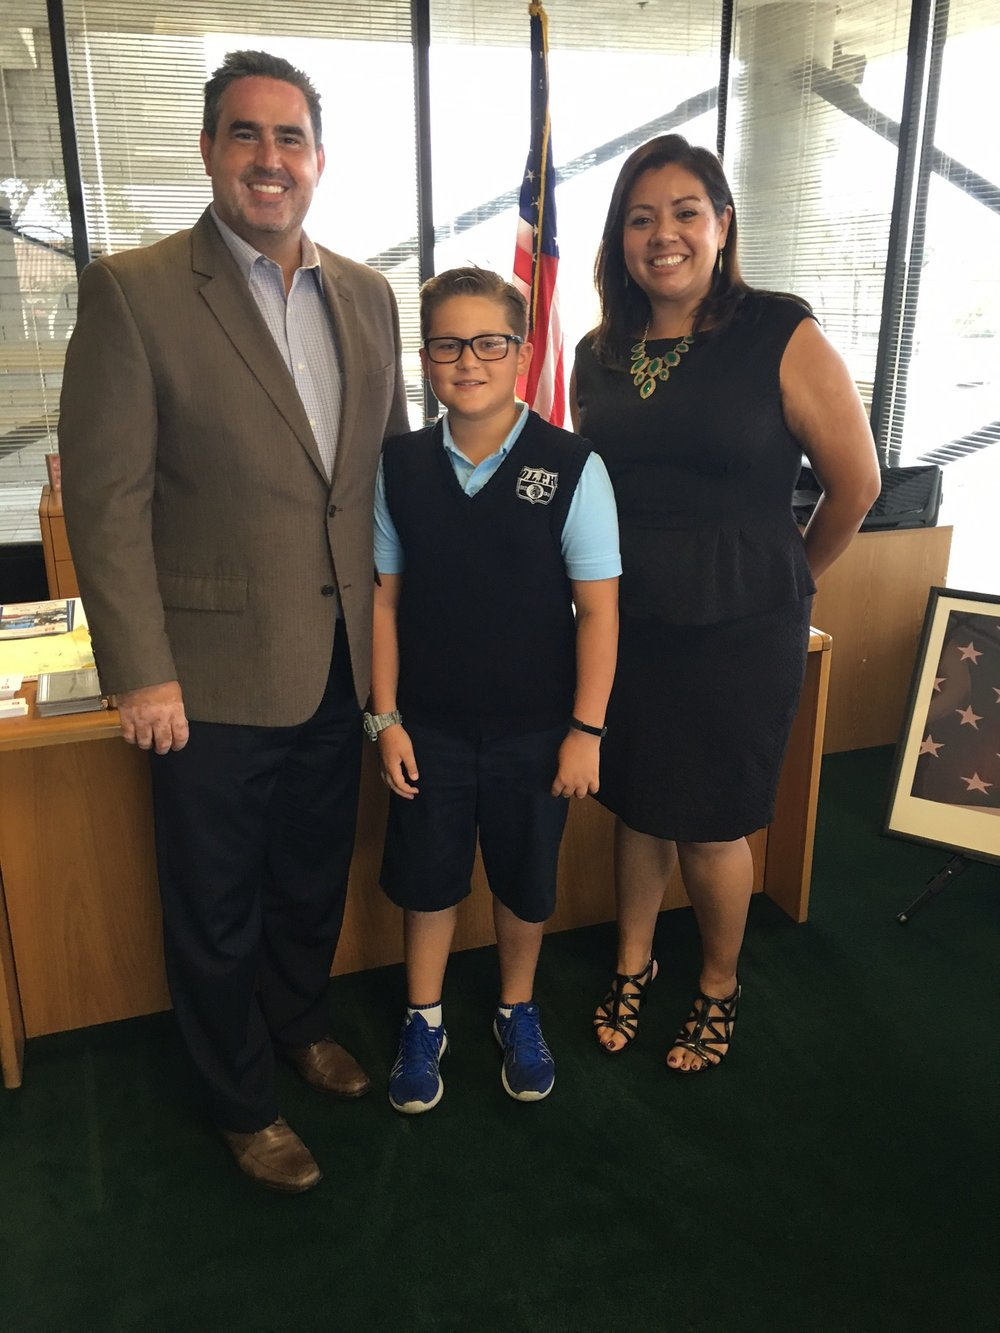 OLPH student Josh Blanco recently interviewed Mayor Saab and City Clerk Jimenez for a school project.